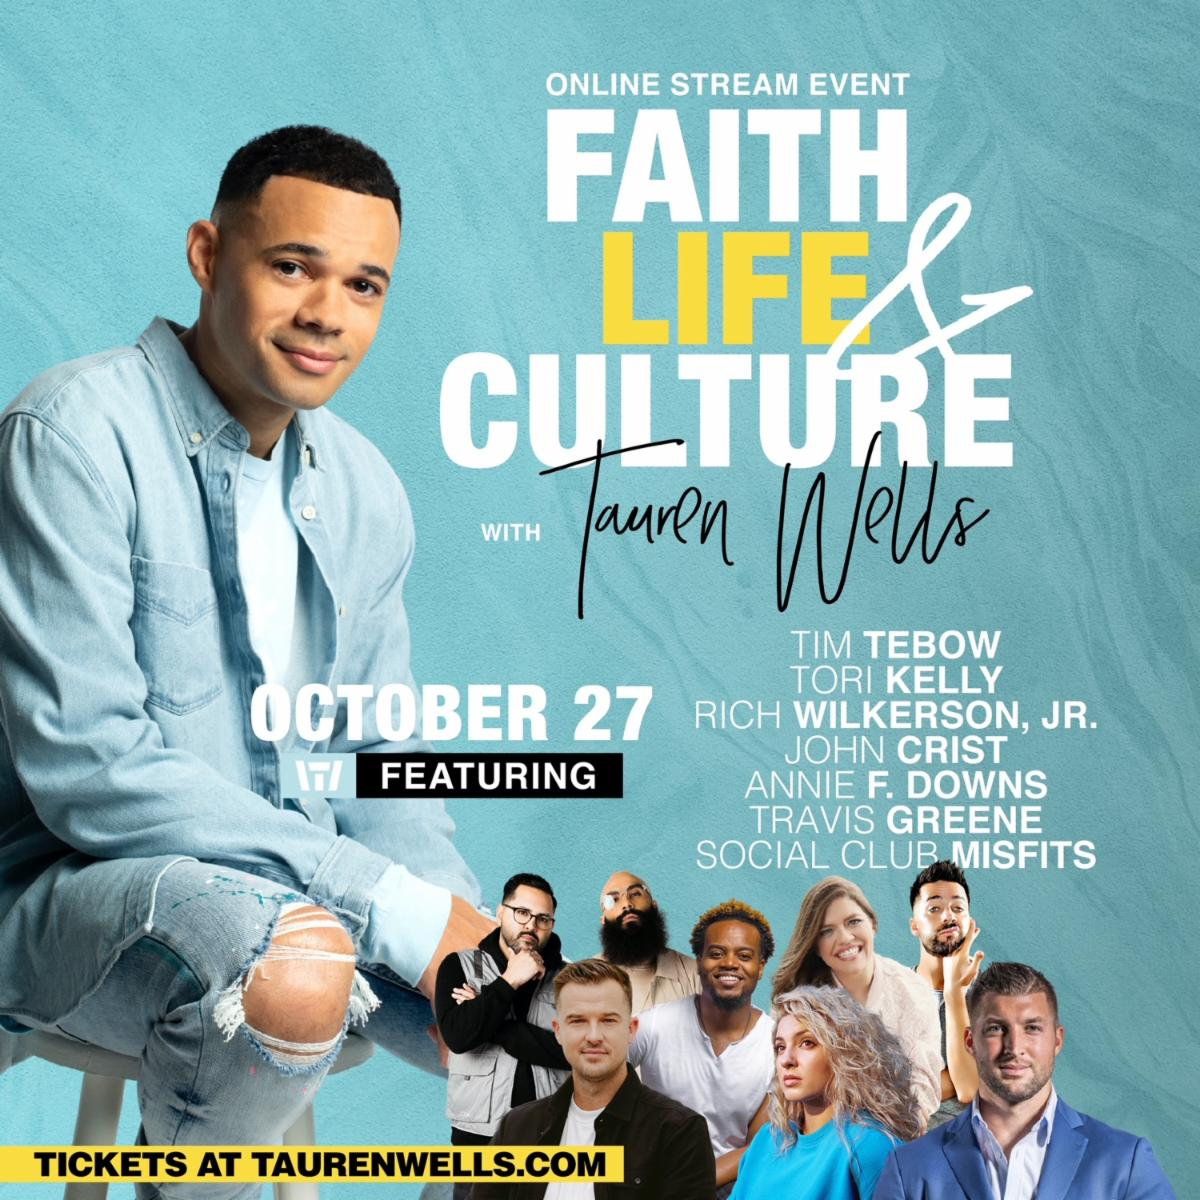 Join Tauren Wells for a Star-Studded COnversation on Faith, Life & Culture October 27th